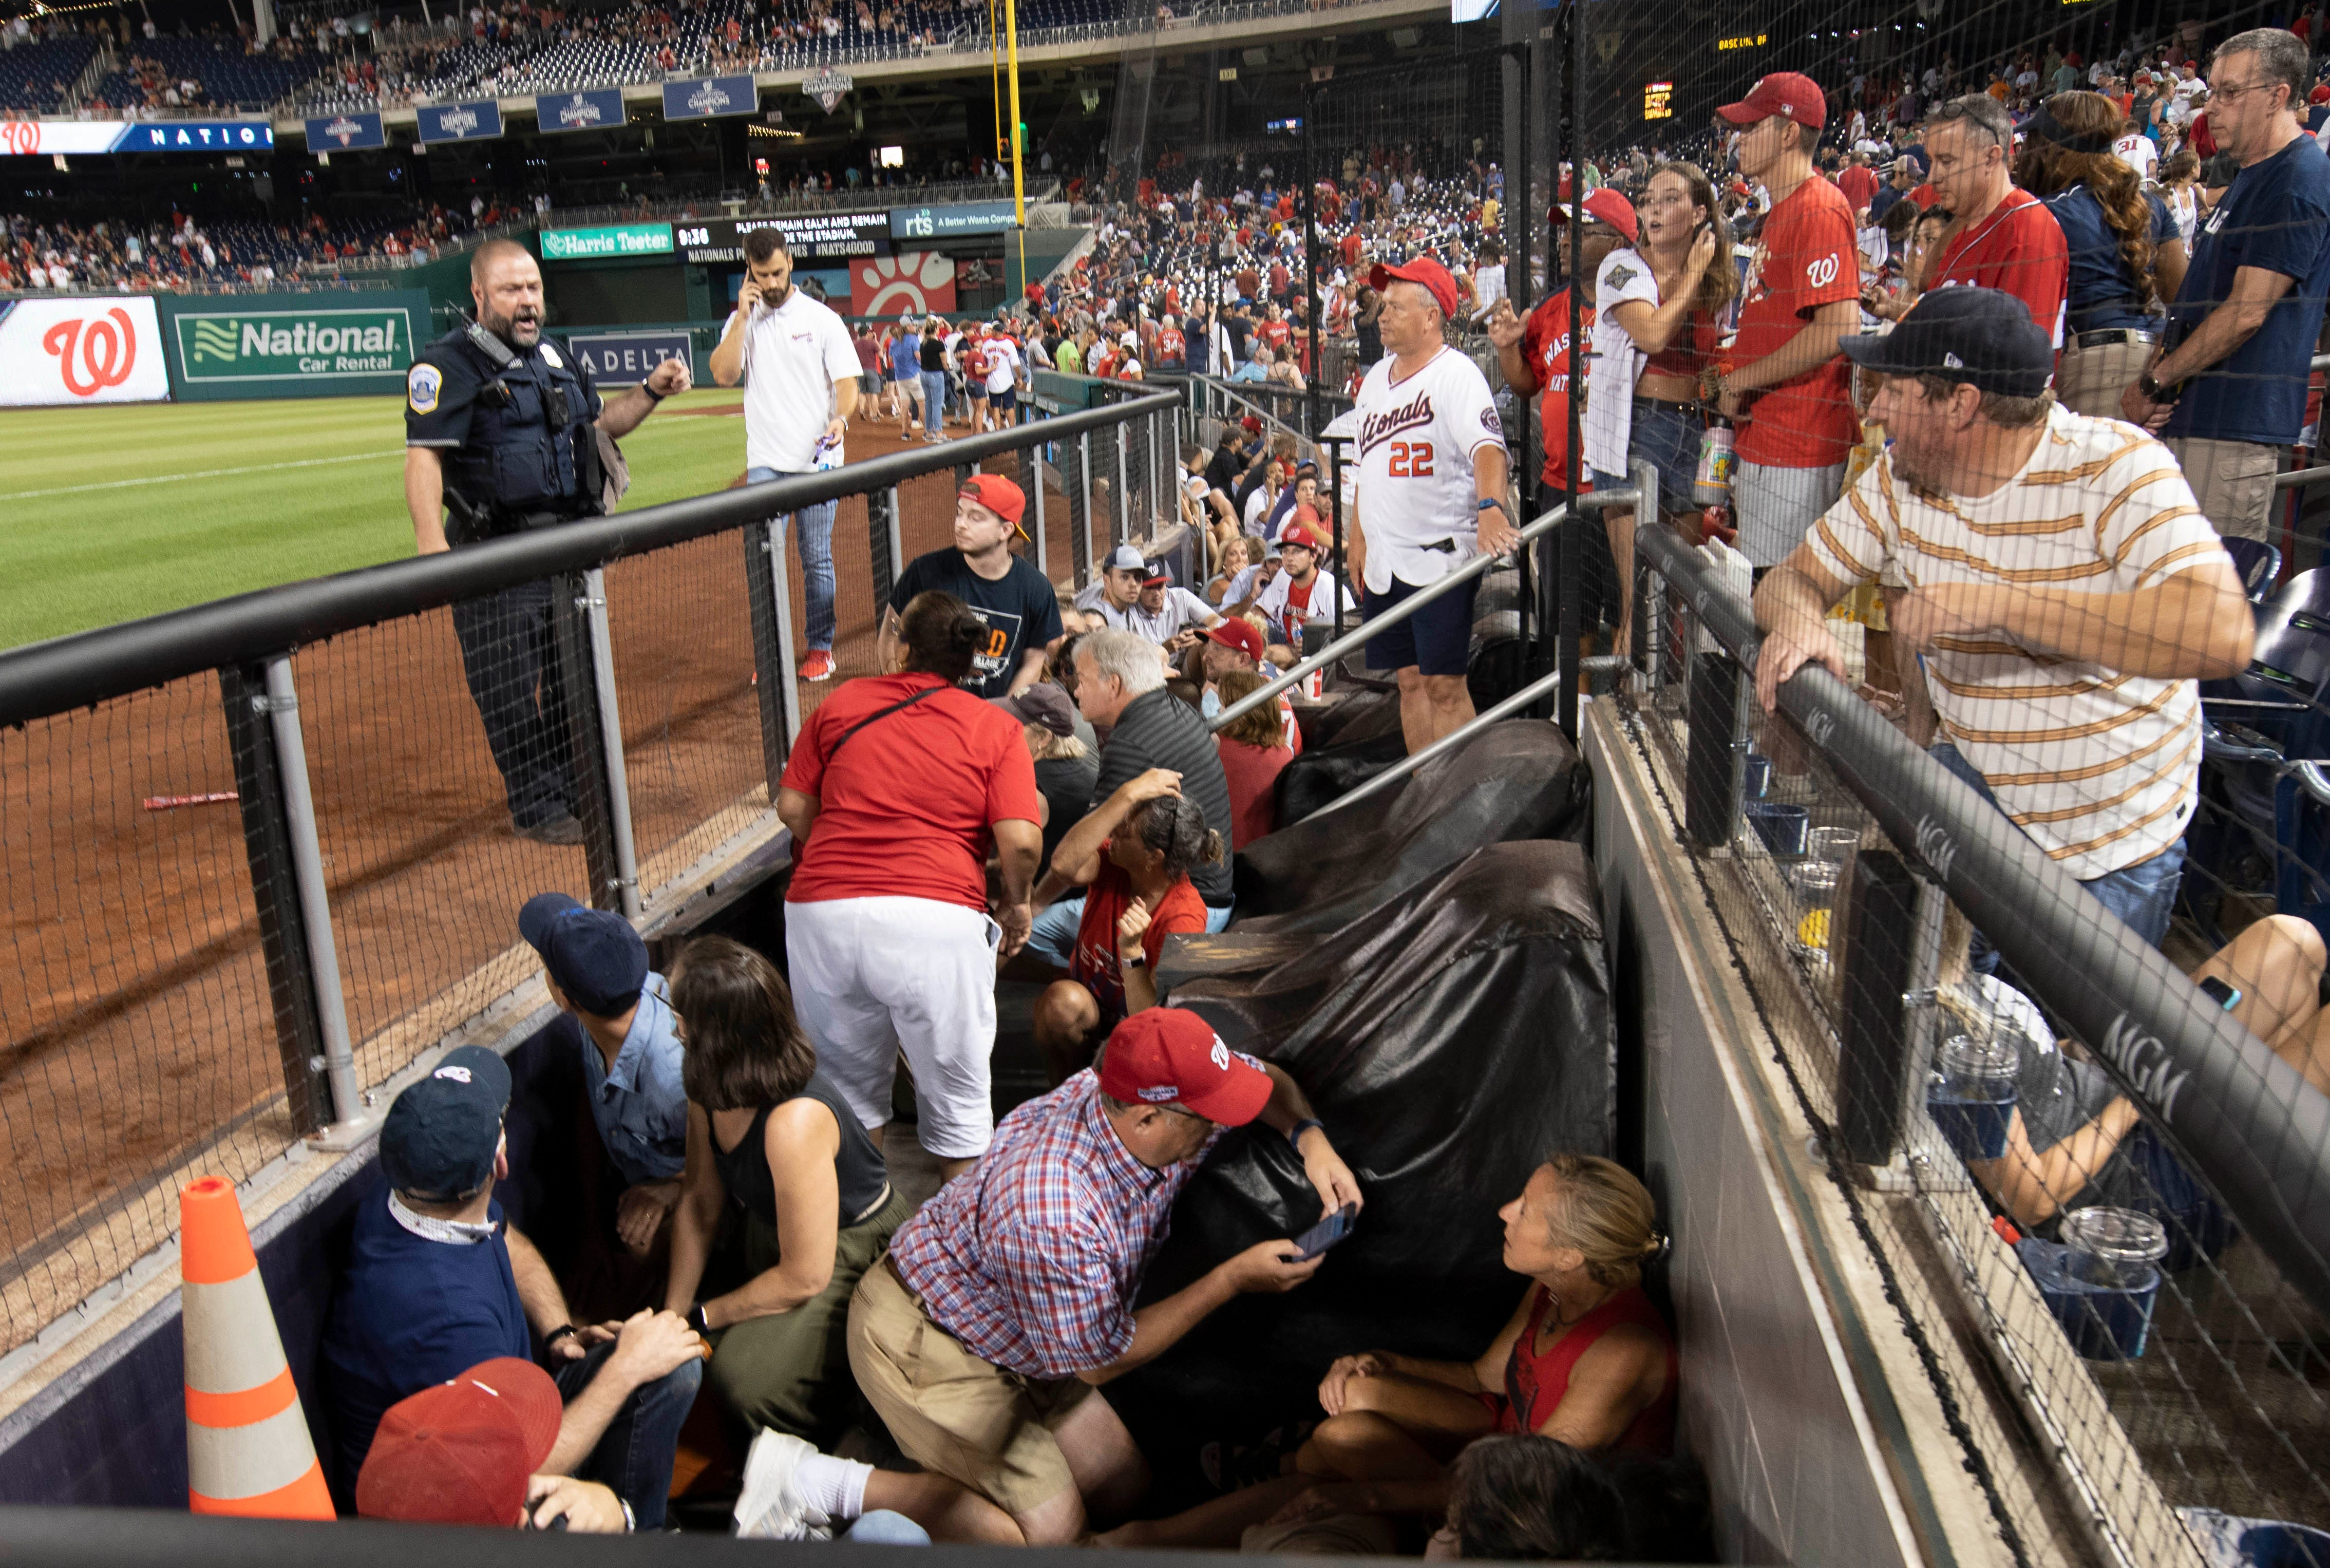 Nationals-Padres game suspended after four wounded in shooting outside Nationals Park in Washington D.C.